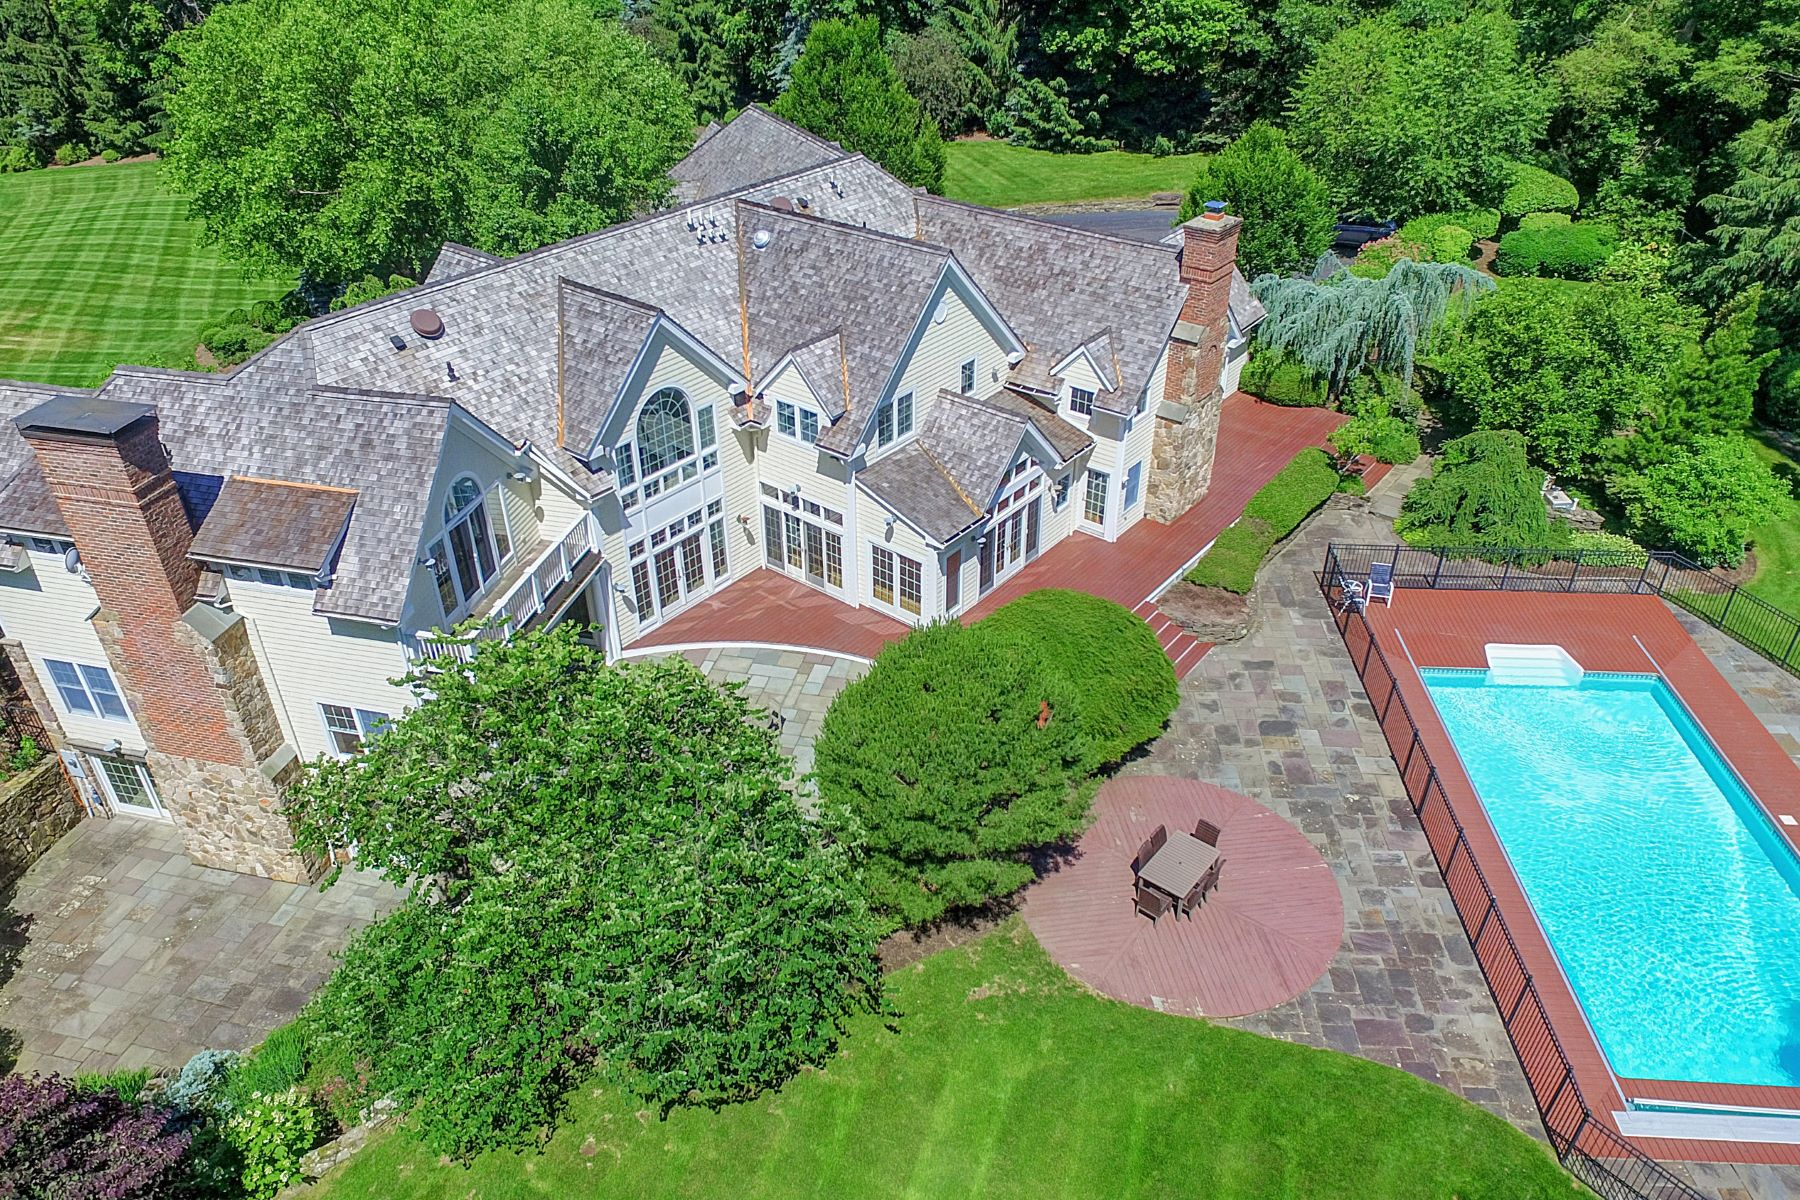 Single Family Homes for Sale at Sophistication and Style 8 Cromwell Lane Mendham Borough, New Jersey 07945 United States